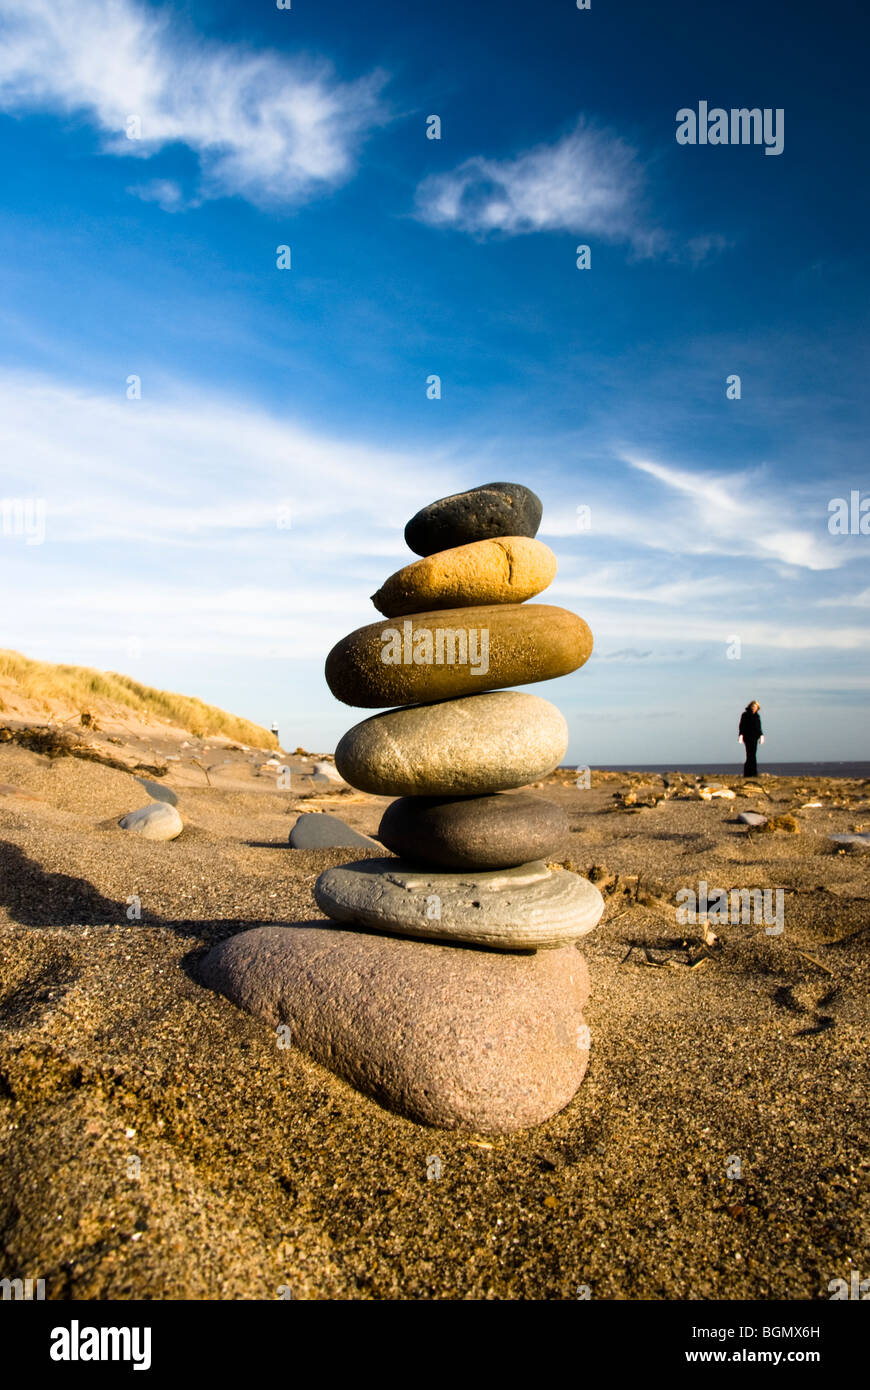 A stone tower built on the beach at Spurn Point, the old lighthouse visible in the background - Stock Image